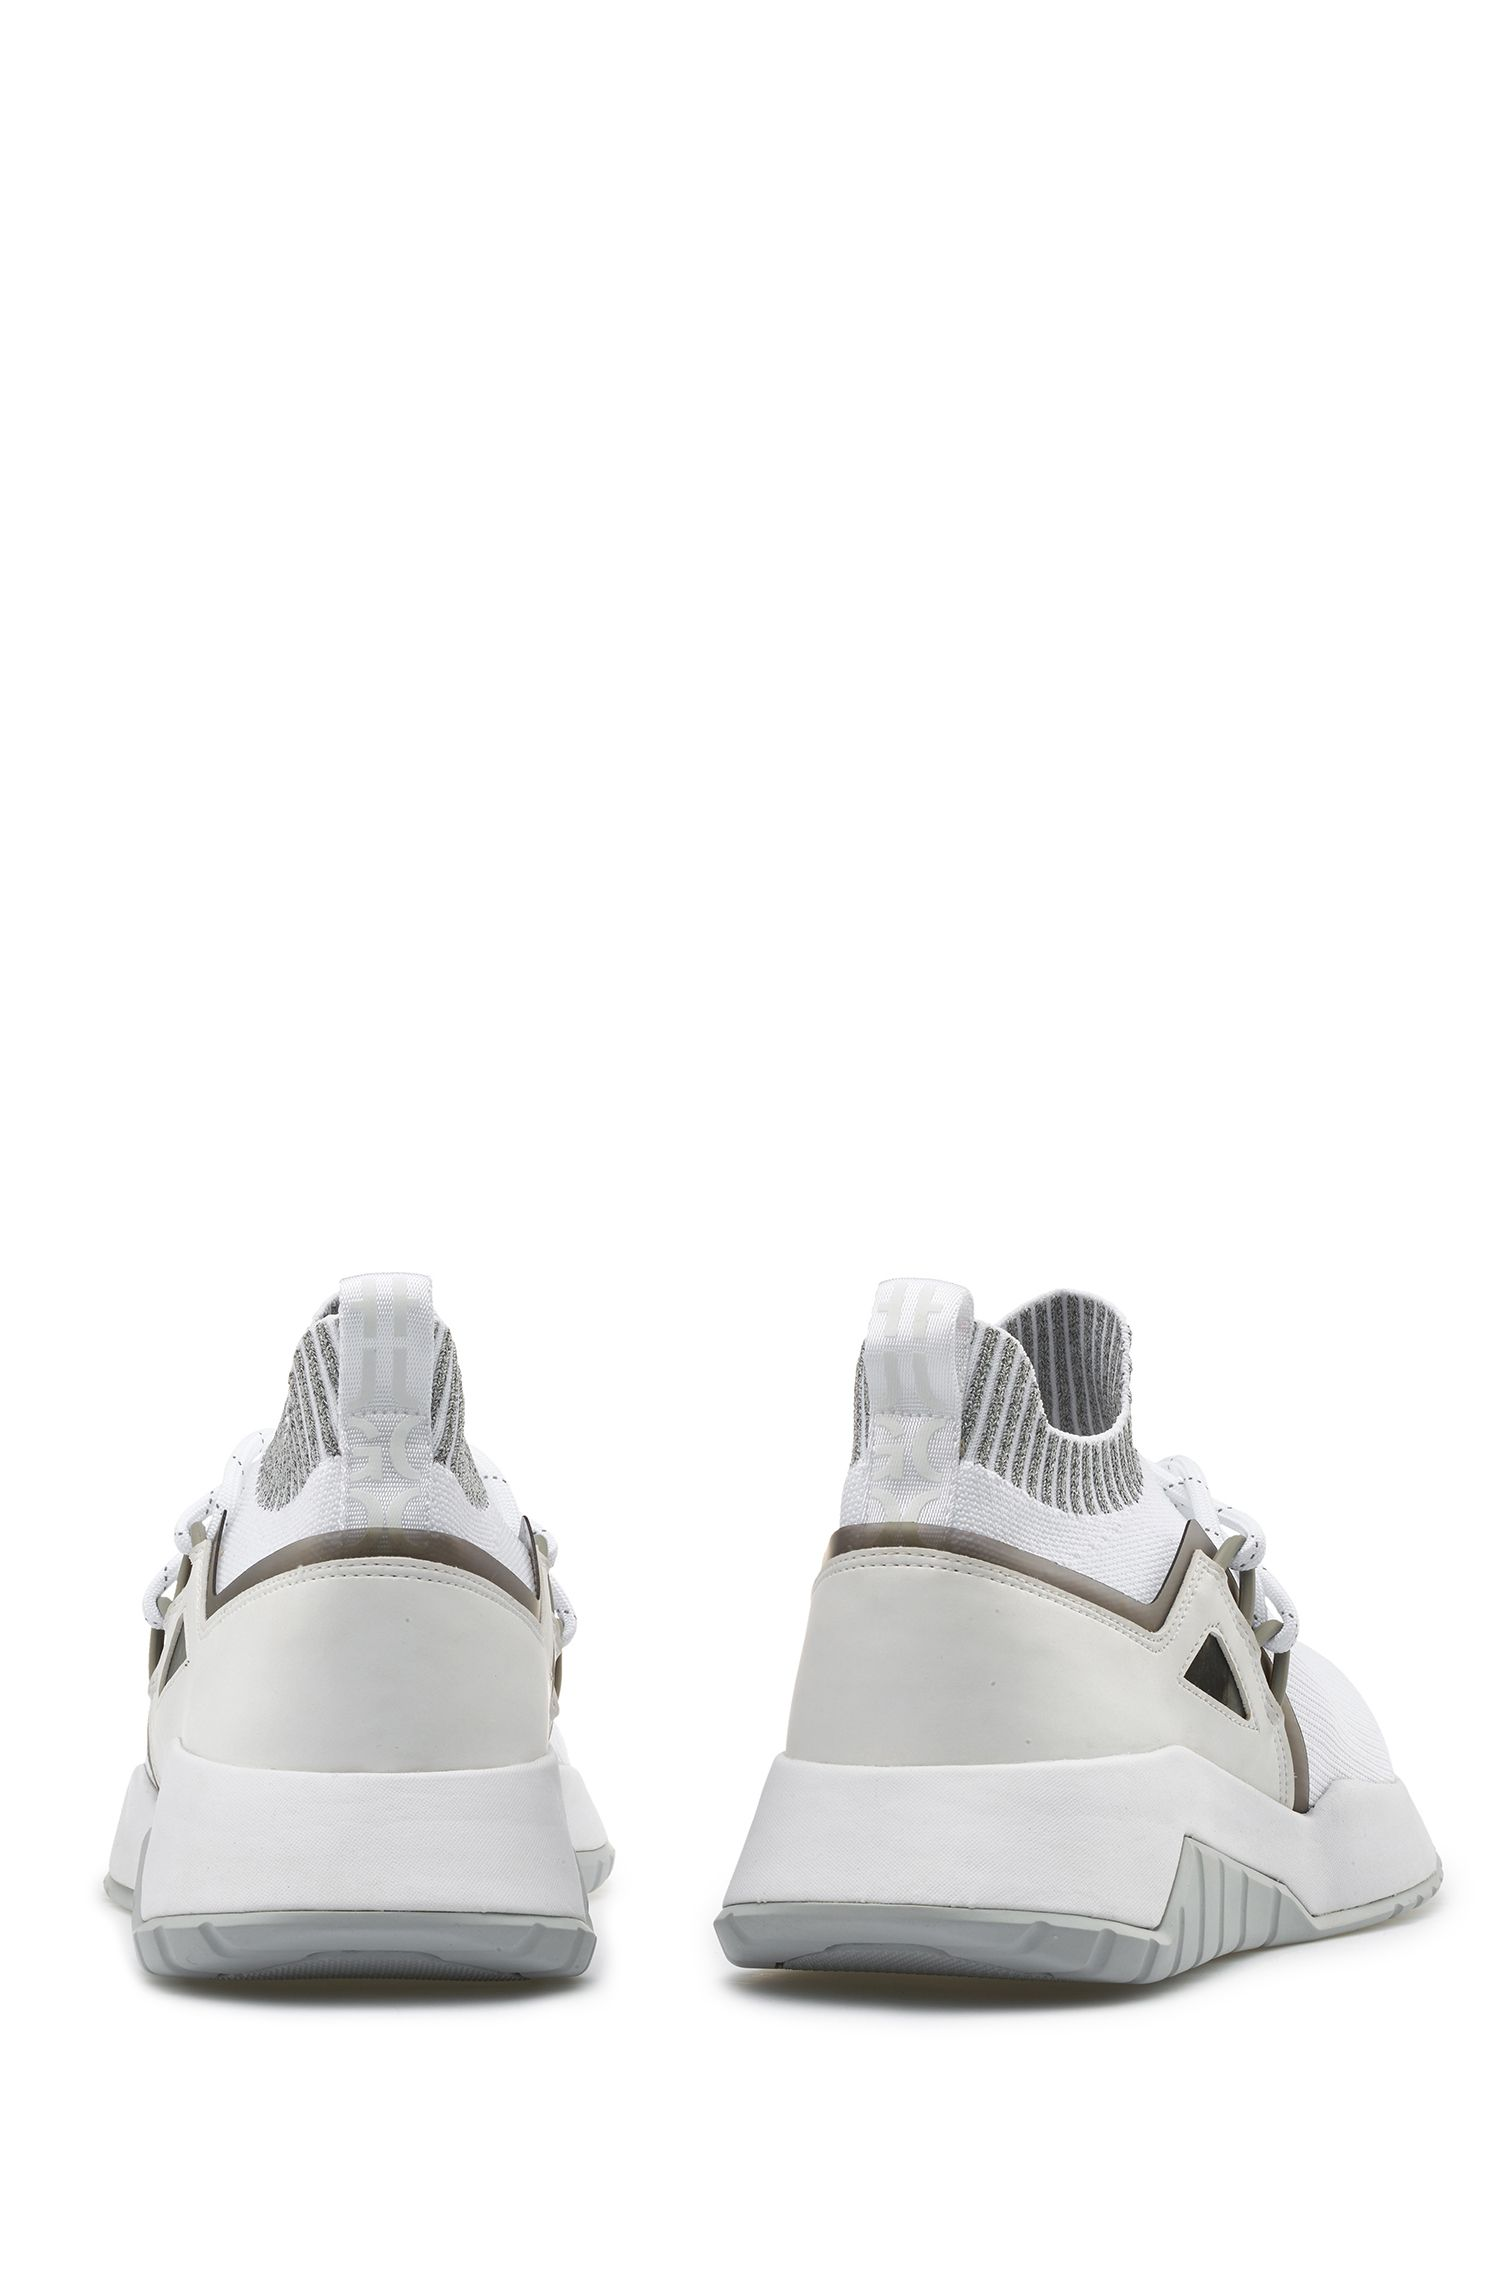 Reflective-logo sneakers with knitted sock, White